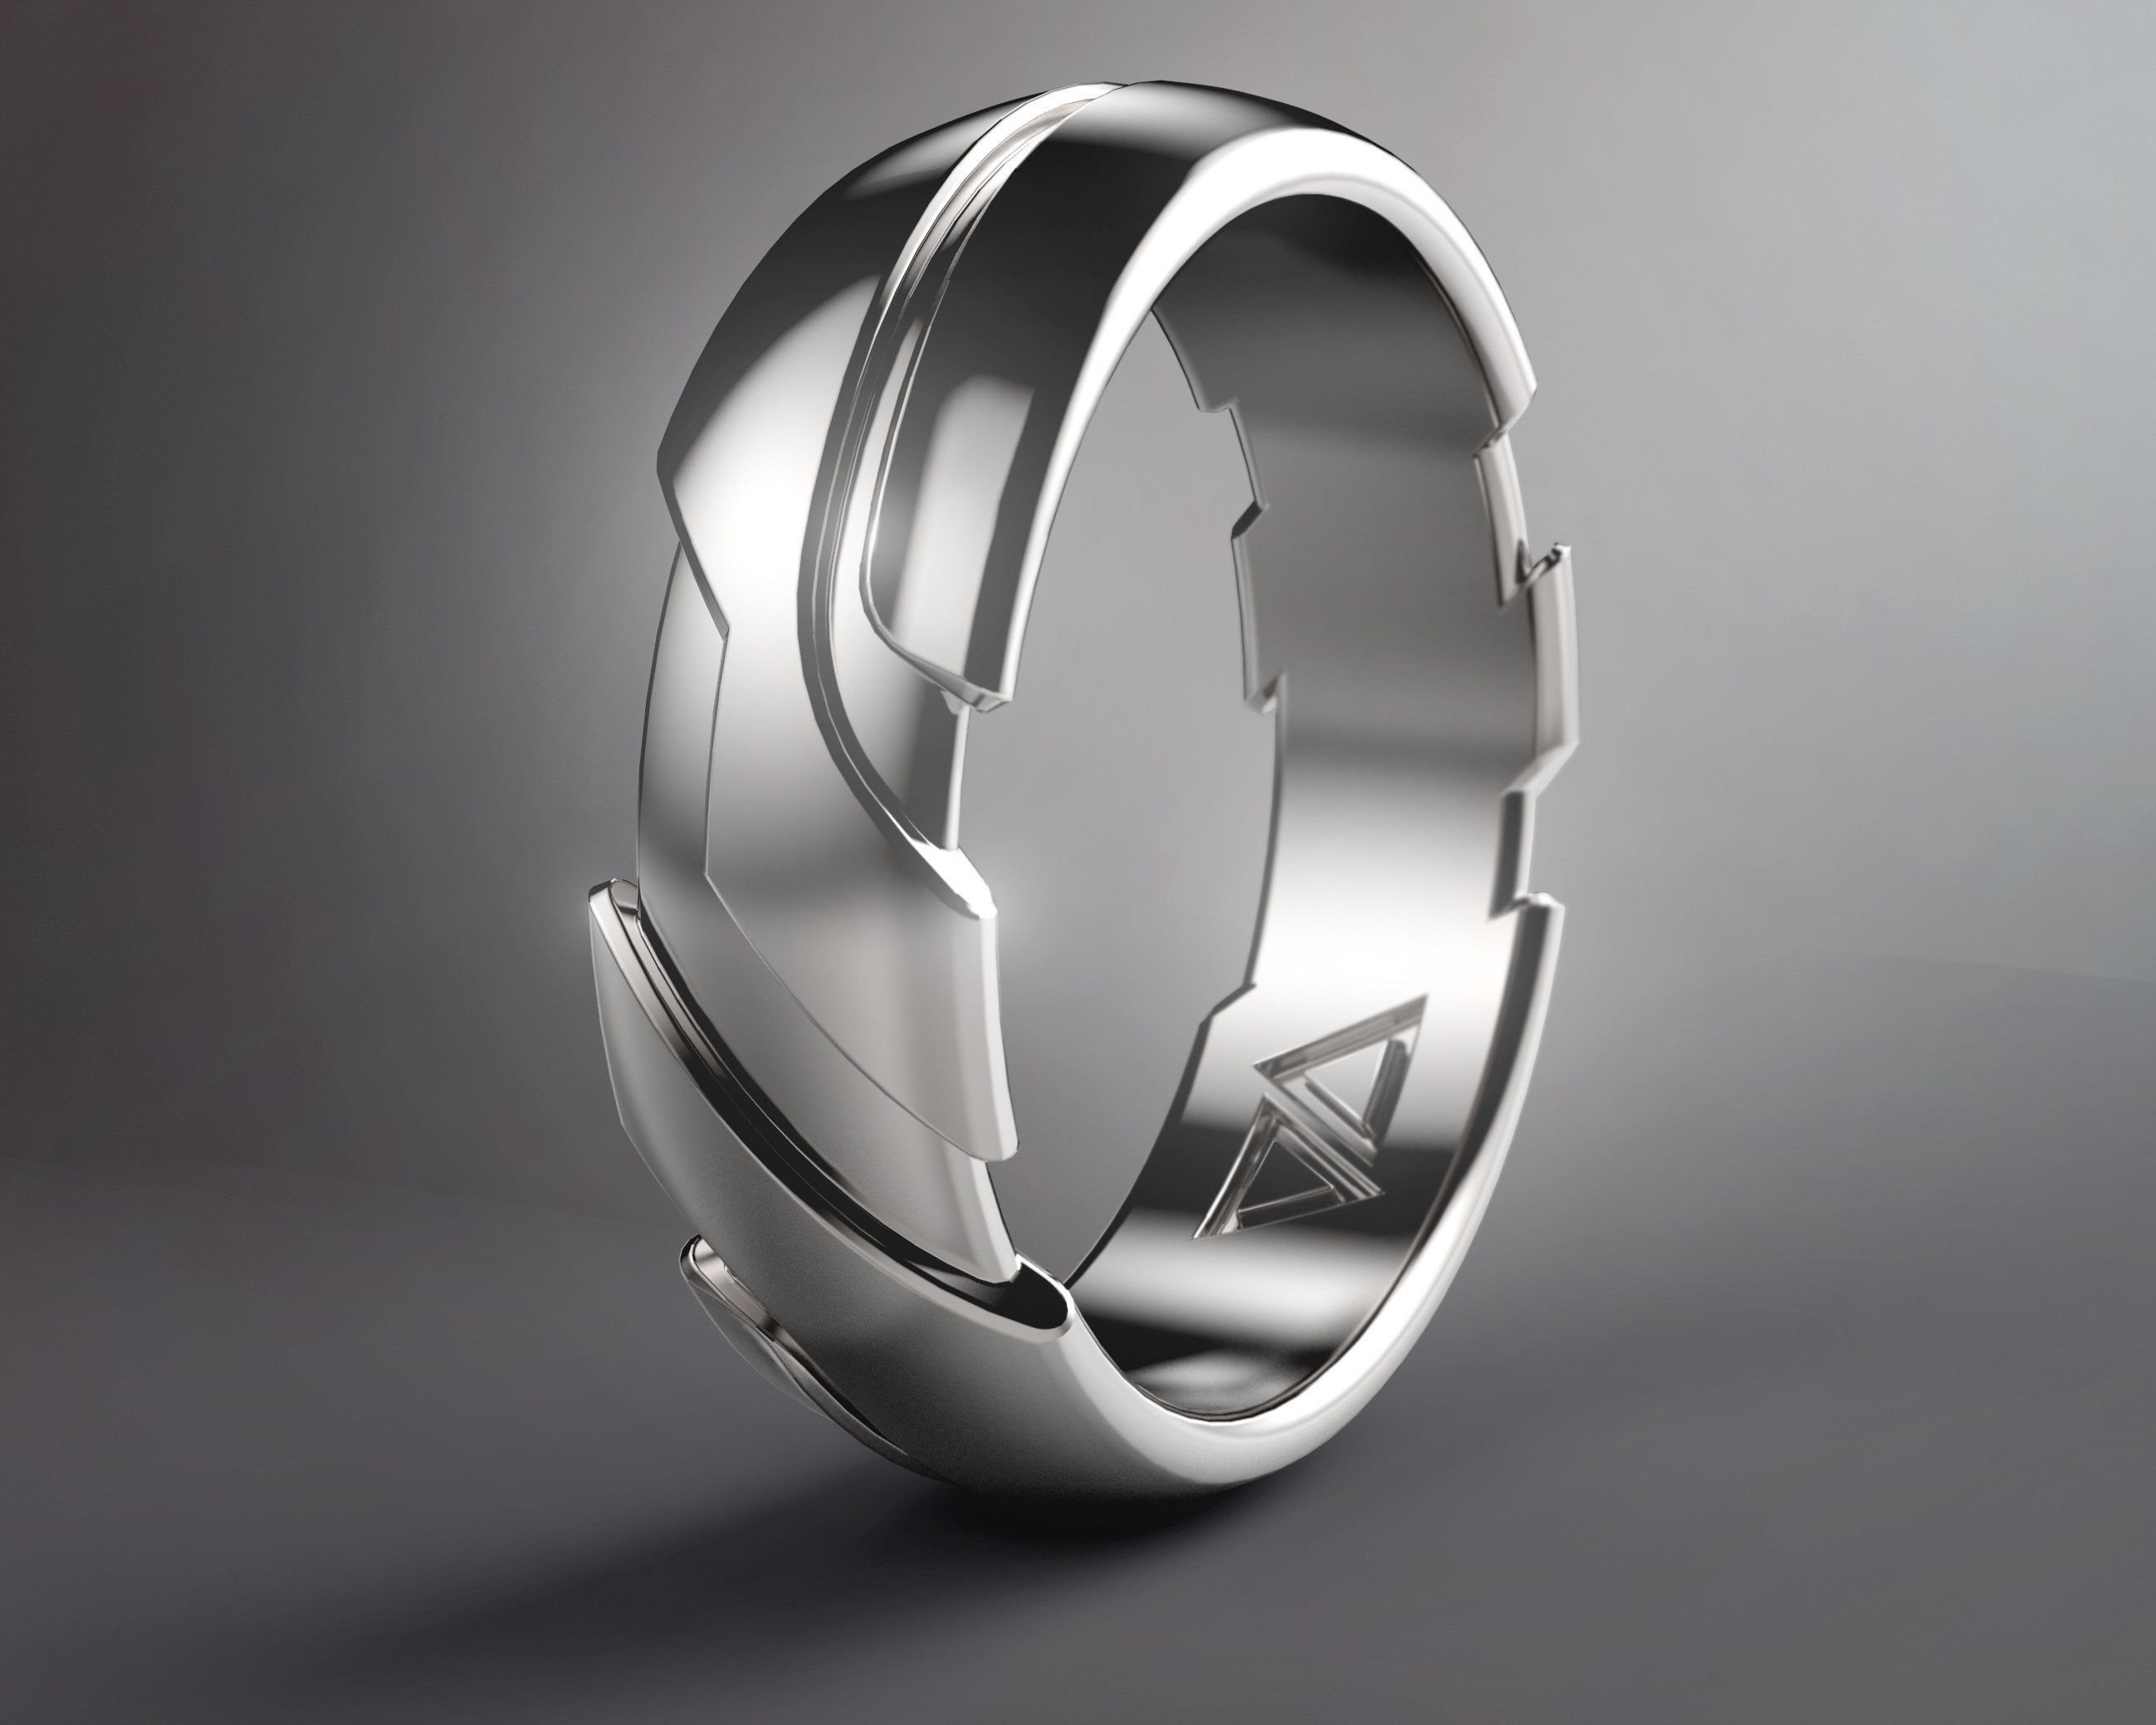 pinshape gd daniel edge printed items printing wedding girgis rings by ring